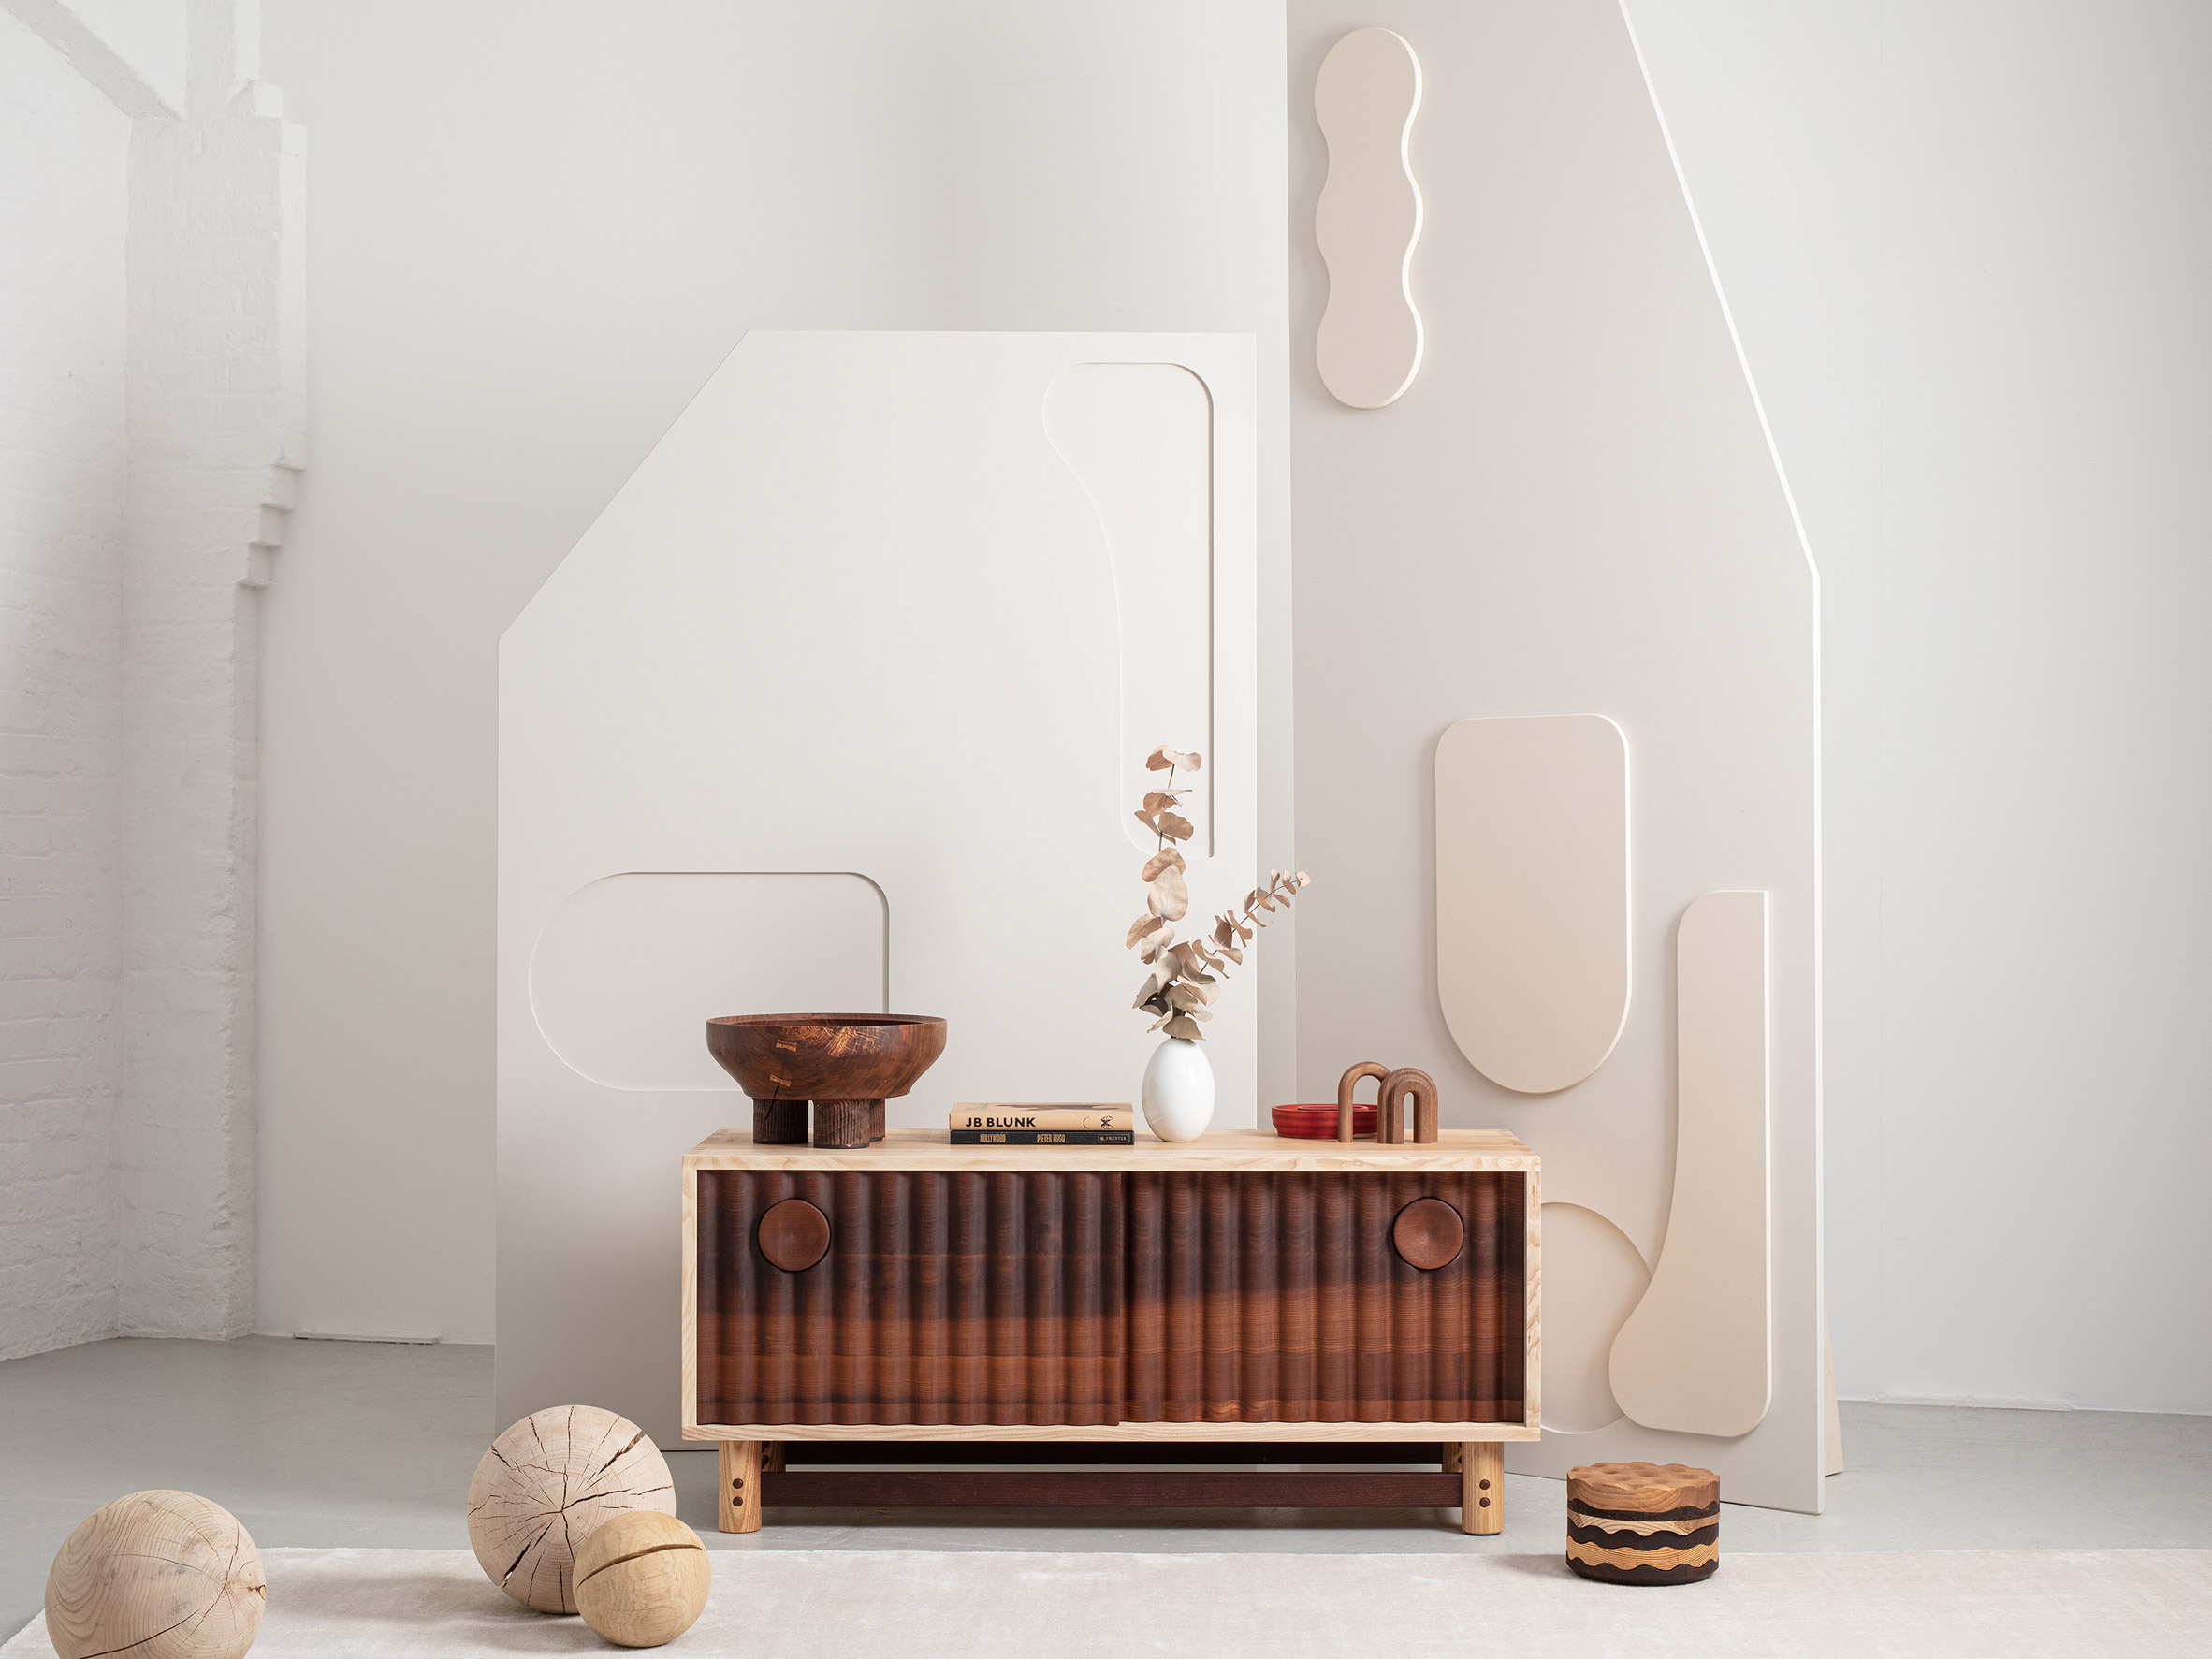 The media unit from Jan Hendzel Studio's collection made using British hardwood